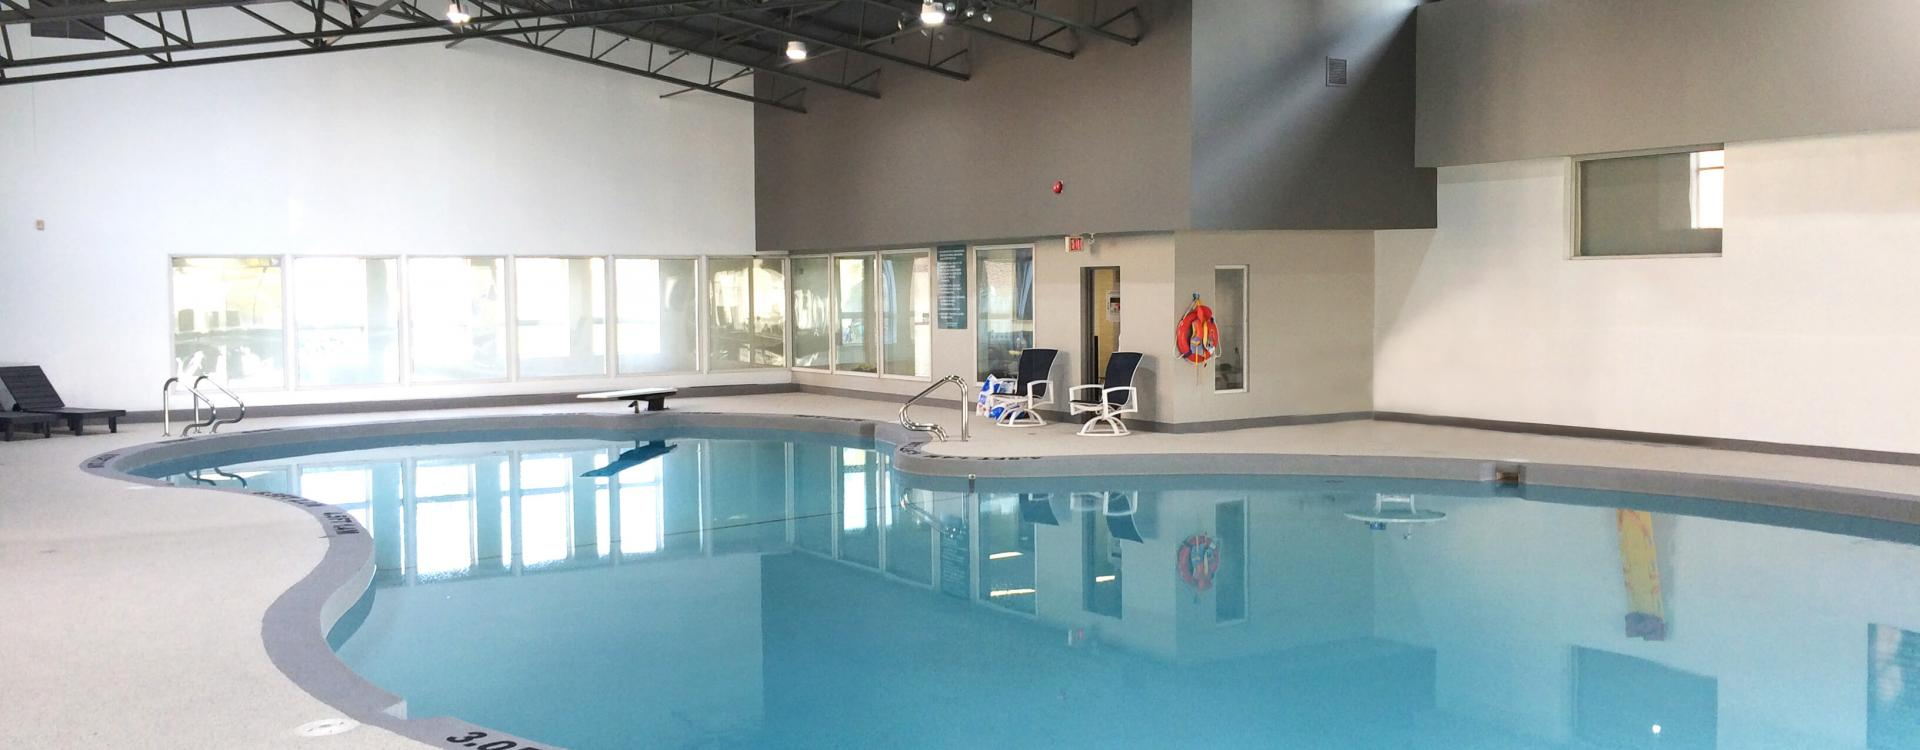 Indoor pool at Parkwood Hills apartments in Ottawa.